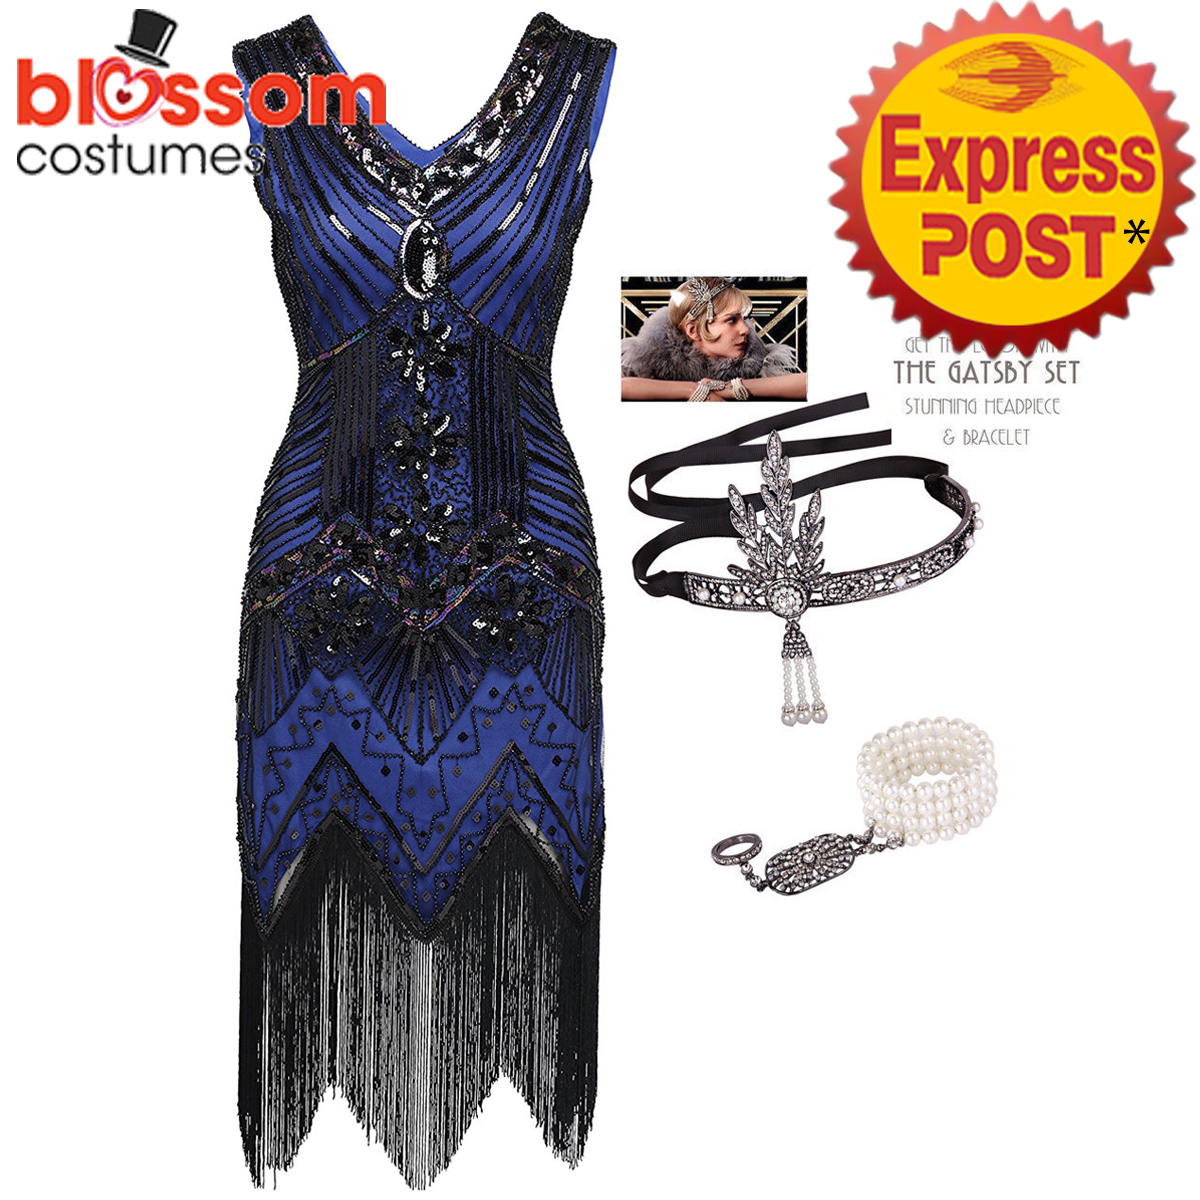 K225-Blue-Ladies-1920s-Roaring-20s-Flapper-Costume-Sequins-Outfit-Fancy-Dress-Up